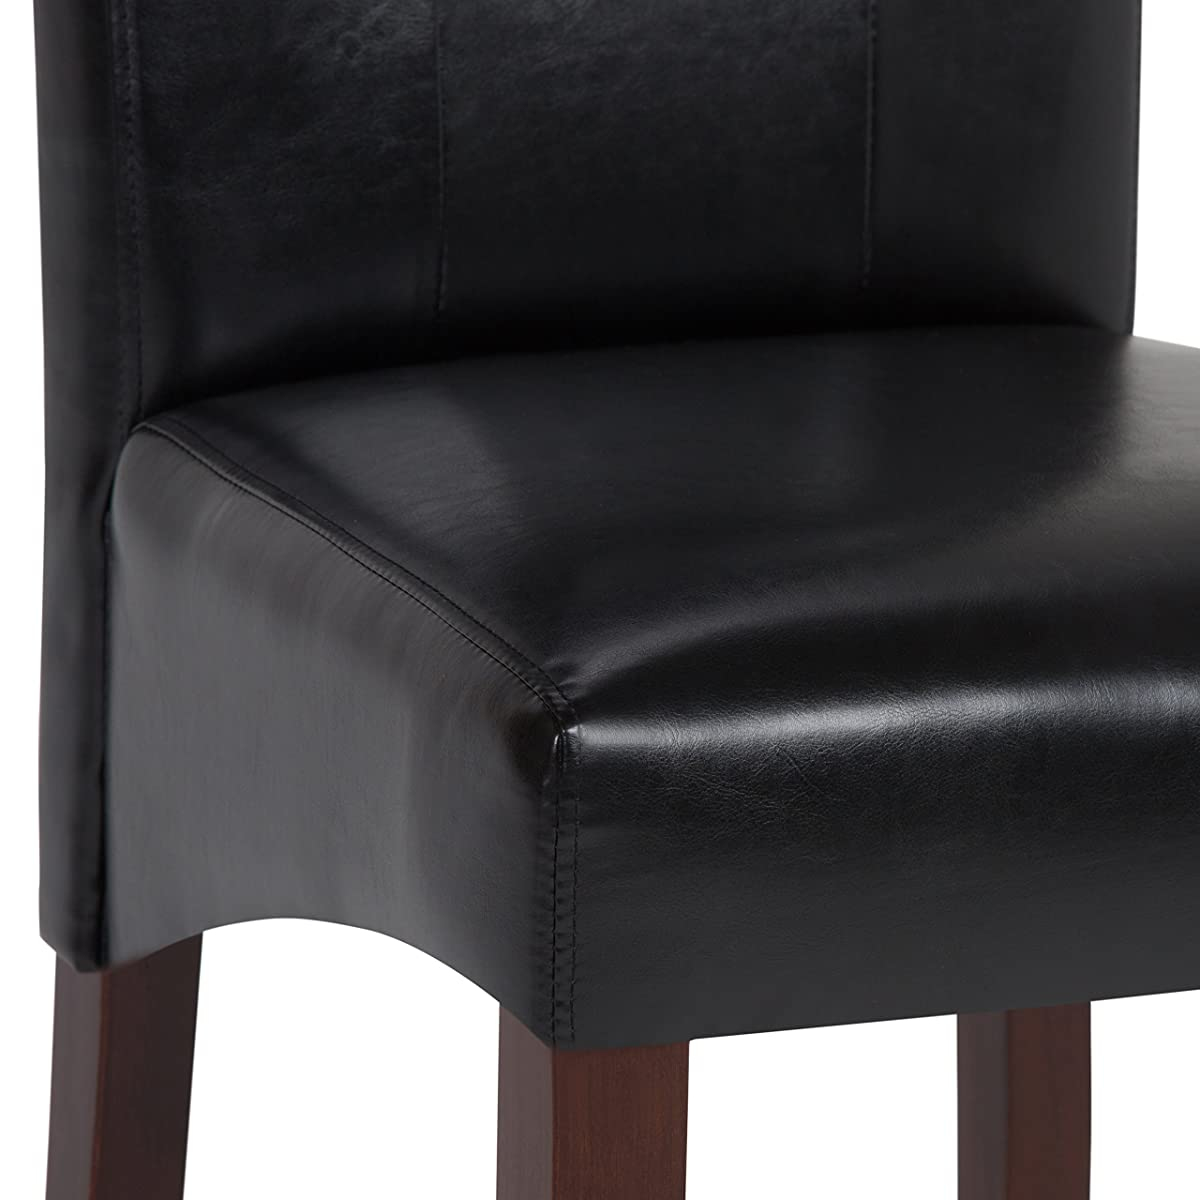 Simpli Home Cosmopolitan Deluxe Tufted Parson Dining Chair, Midnight Black (Set of 2)